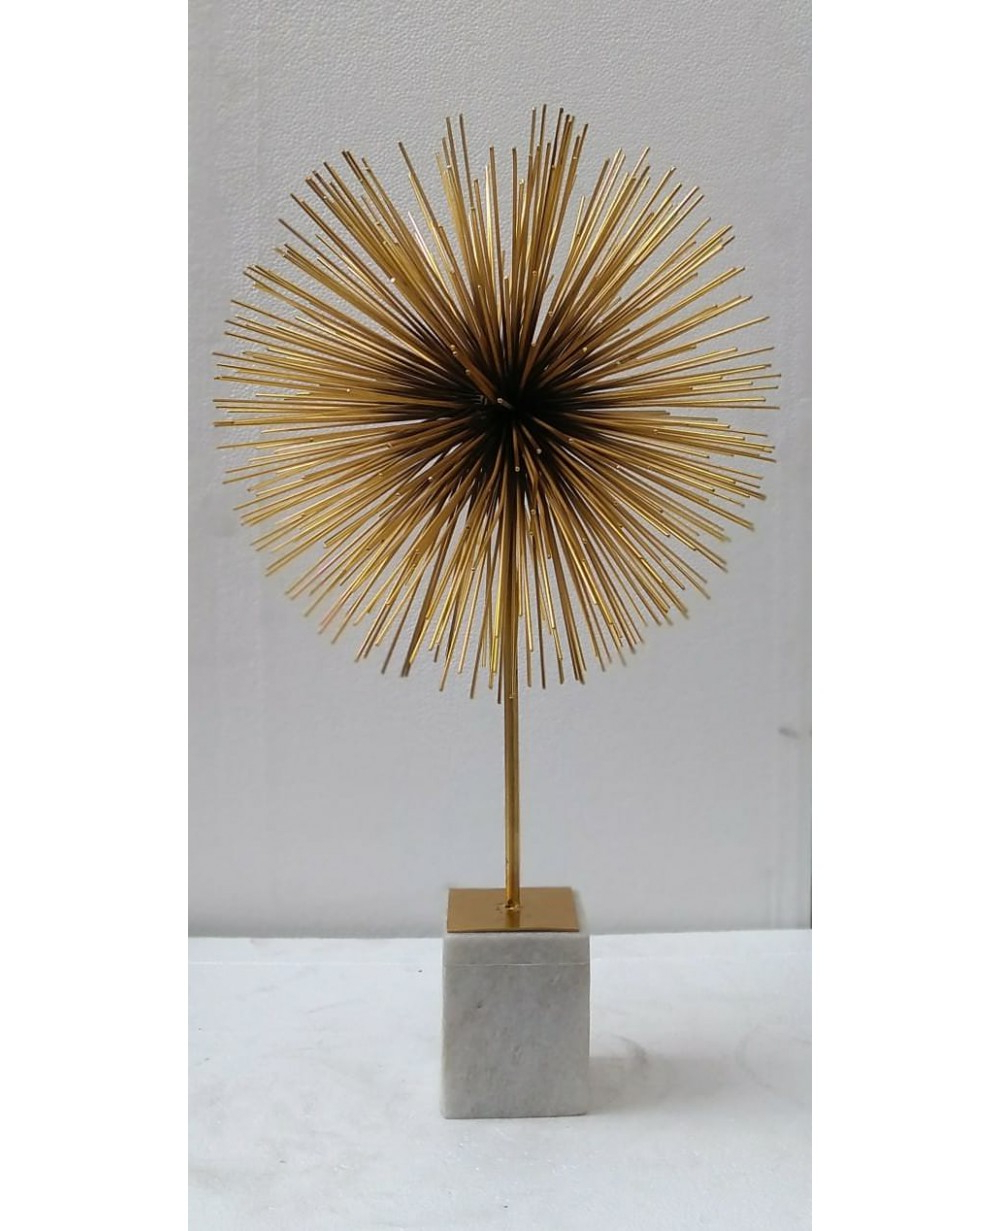 Preferred Handcrafted Metal Wall Décor In Handcrafted Old Brass Copper 6 Pcs Sunburst Golden Color (View 10 of 20)